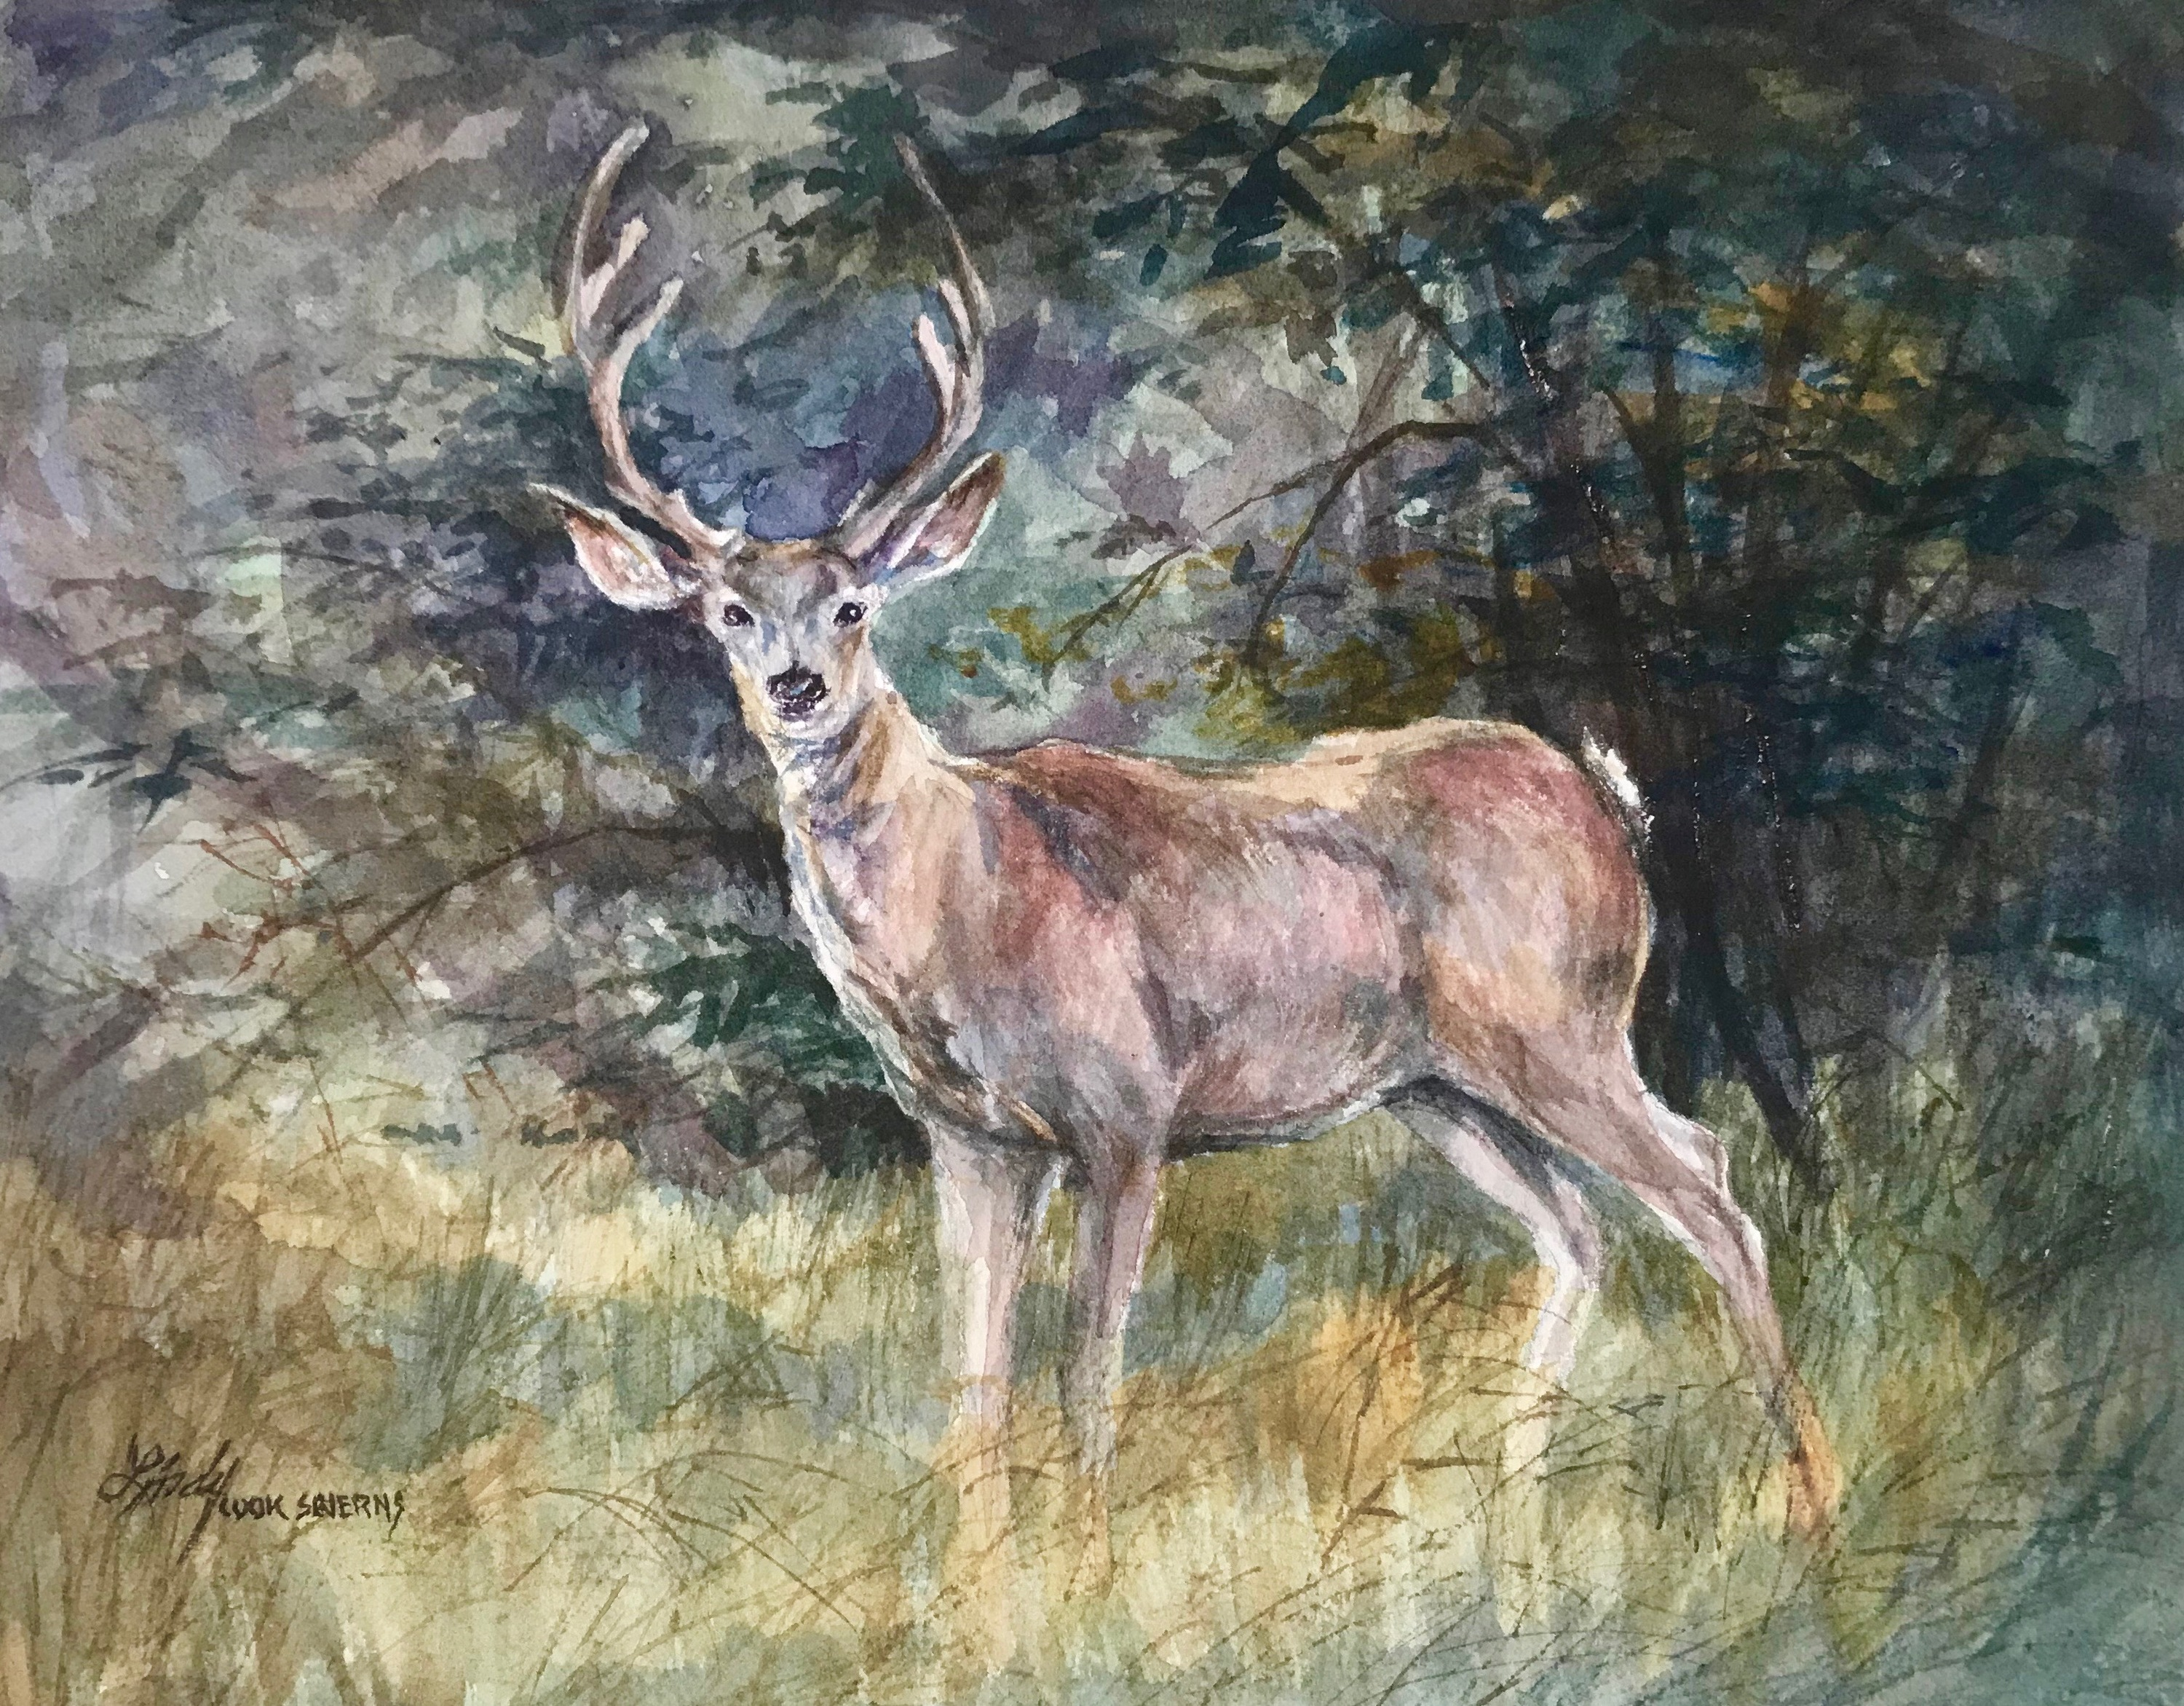 Fall velvet 8x10 watercolor lindy cook severns gsmfod